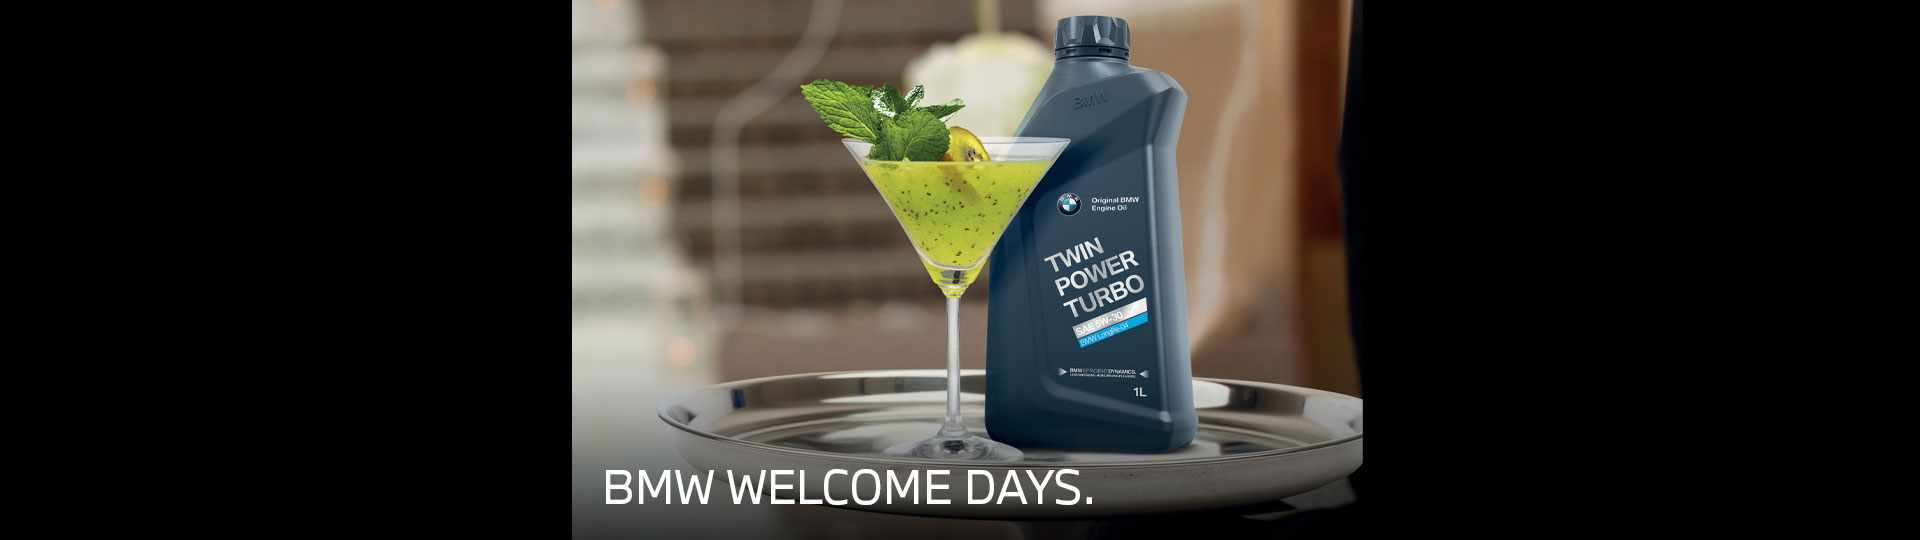 BMW-Welcome-Days-min.jpg